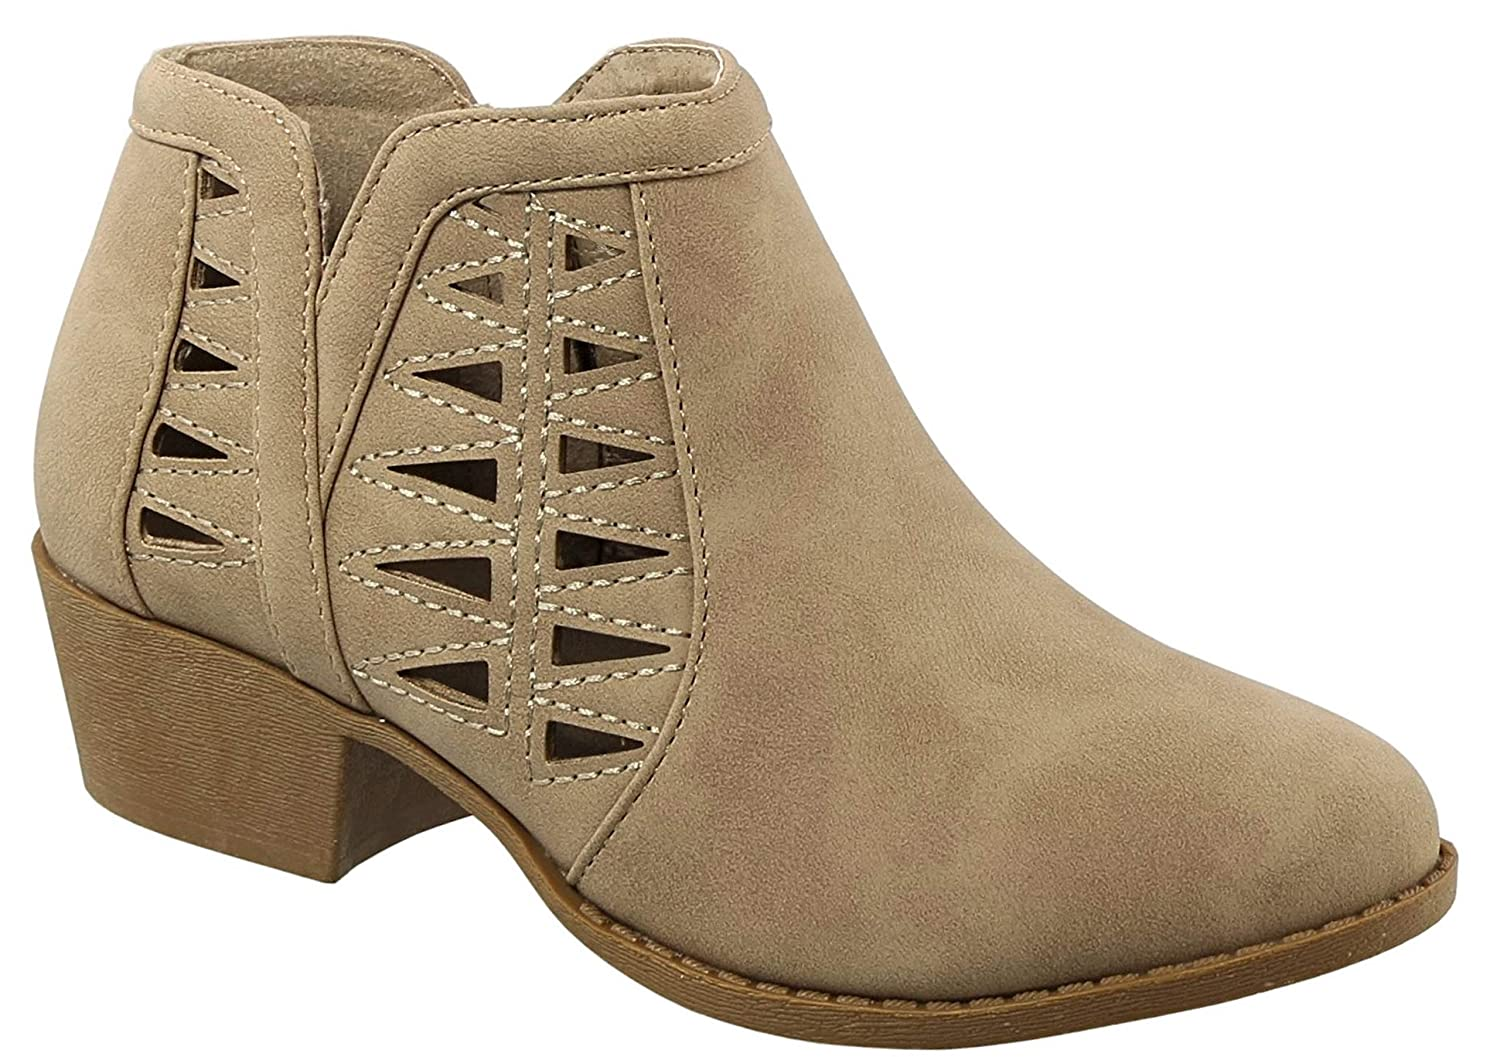 Amazon.com: BDshoes Glenda Fashion Cut Out Perforated Ankle Boot with Low Heel for Ladies (Assorted Colors): Shoes